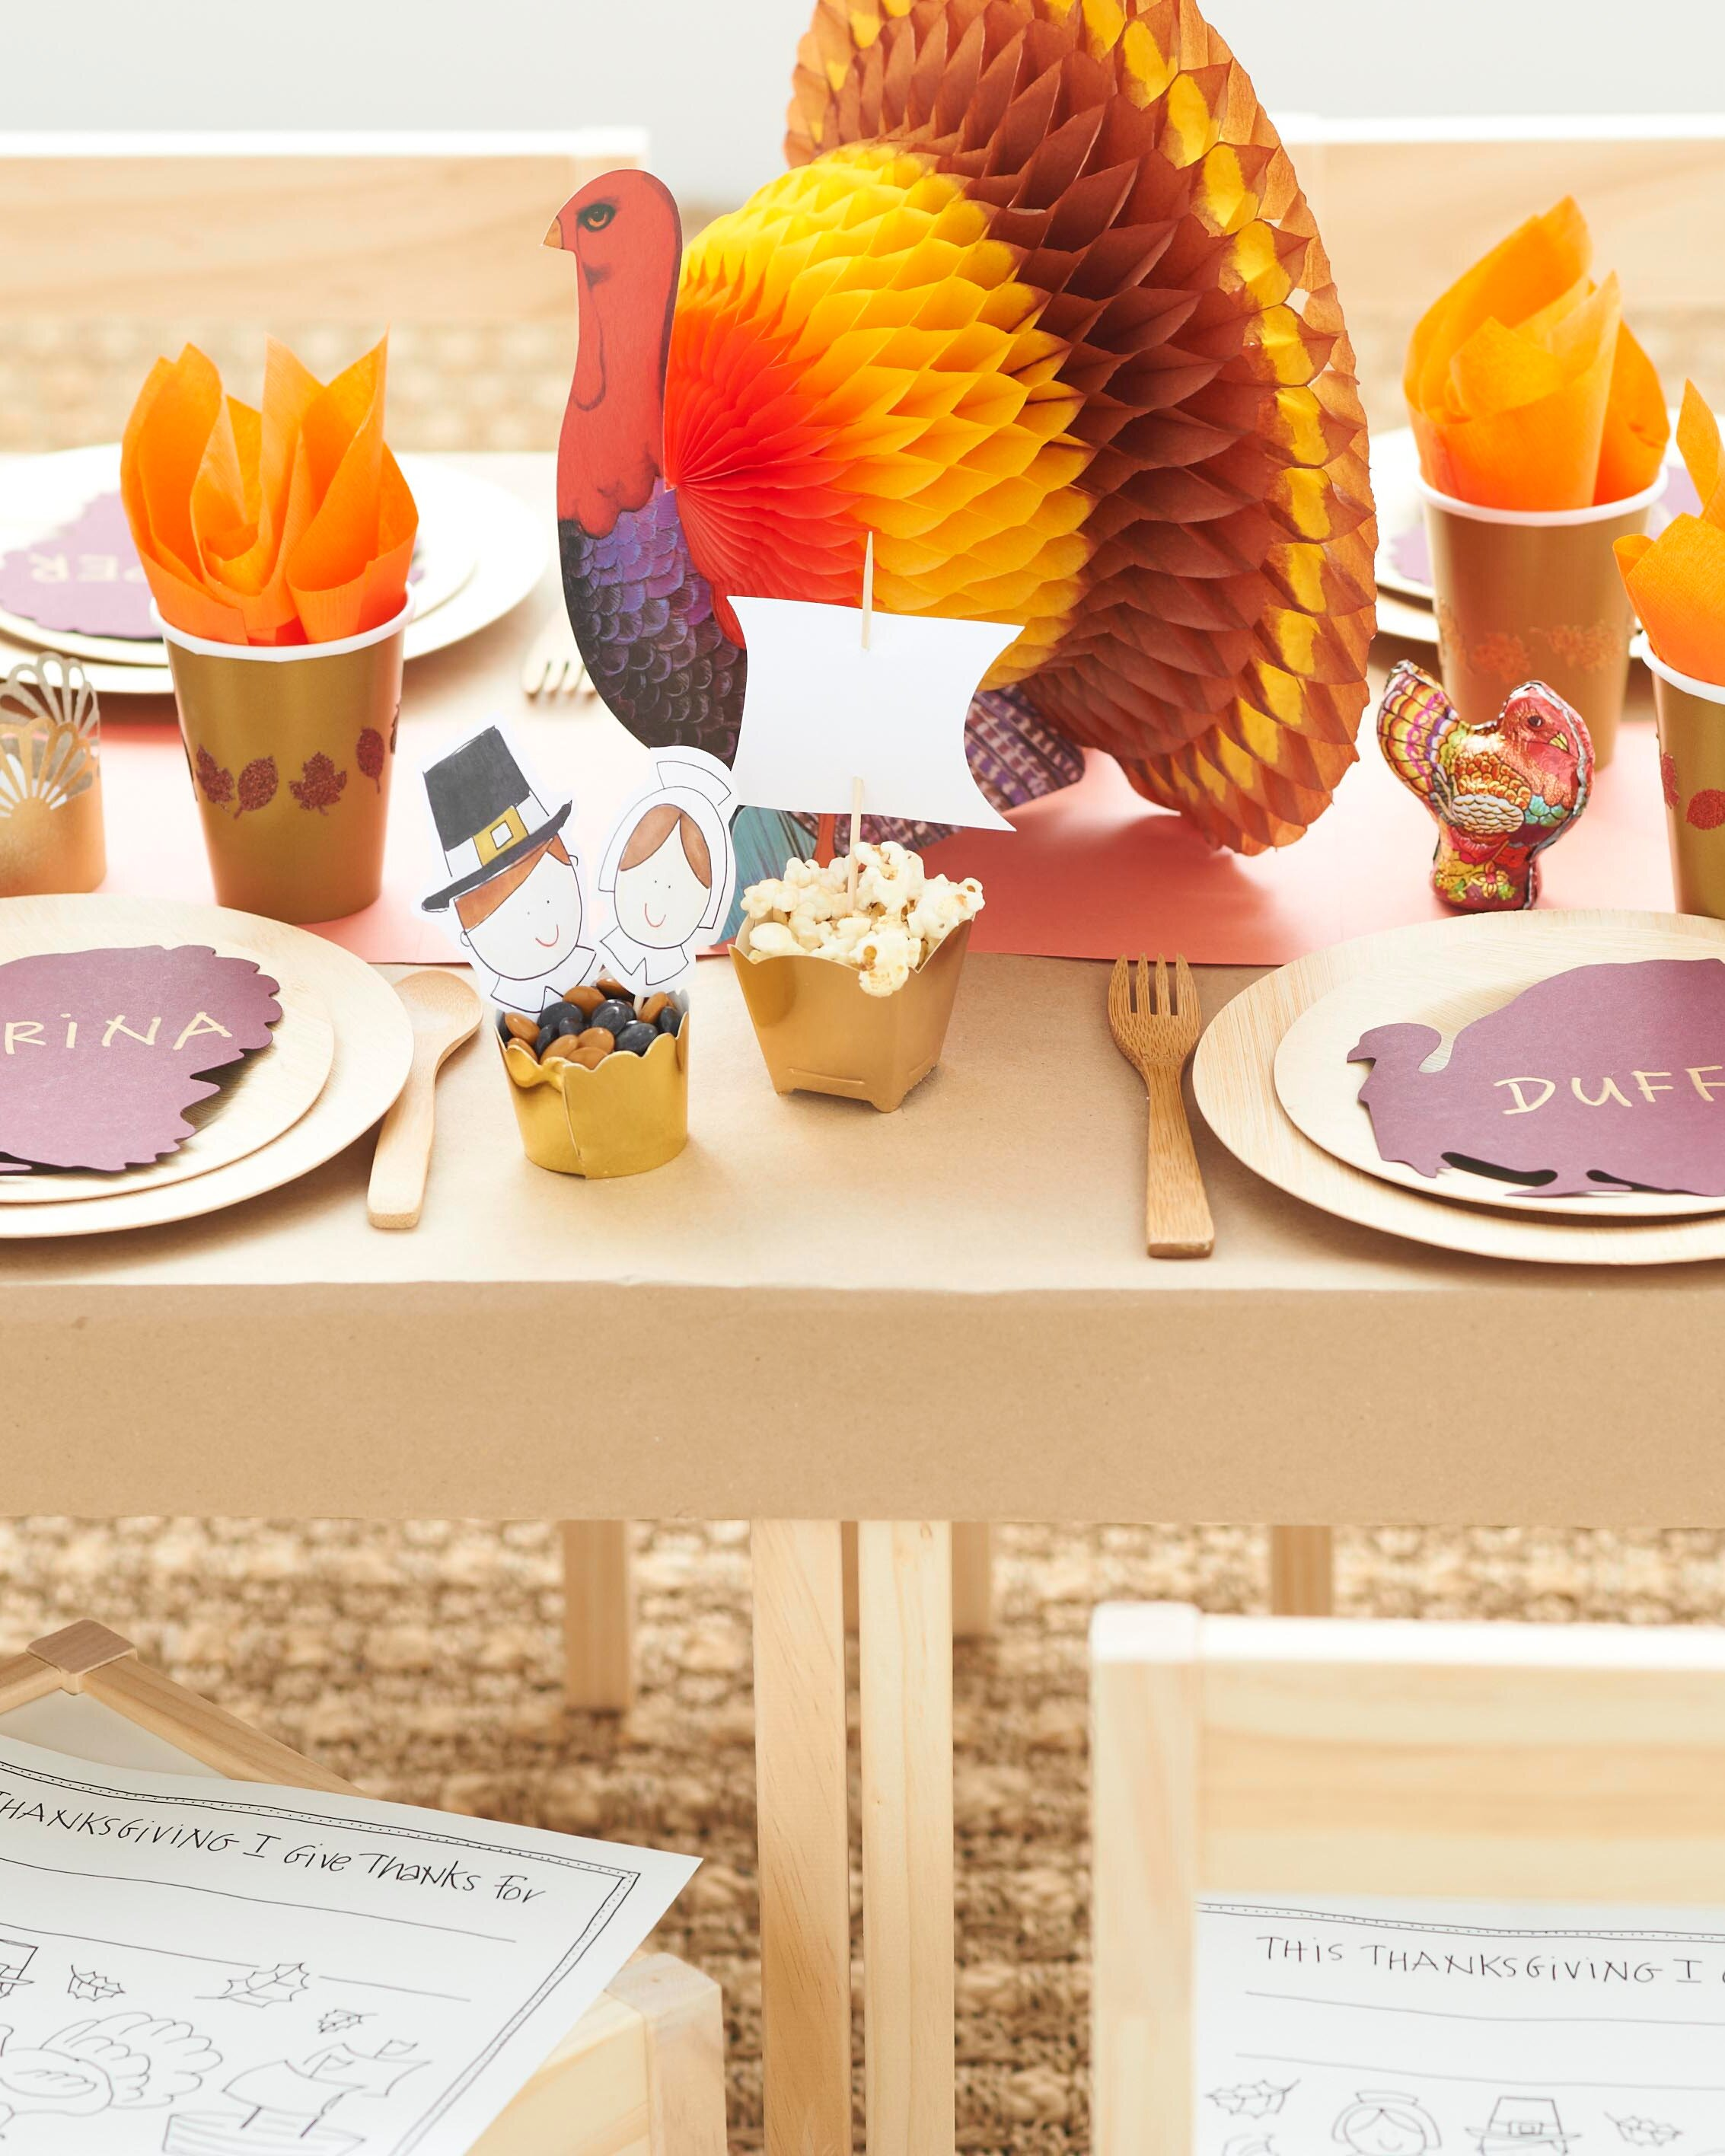 11 Thanksgiving Tables For Kids That Set Up Fun Crafts And